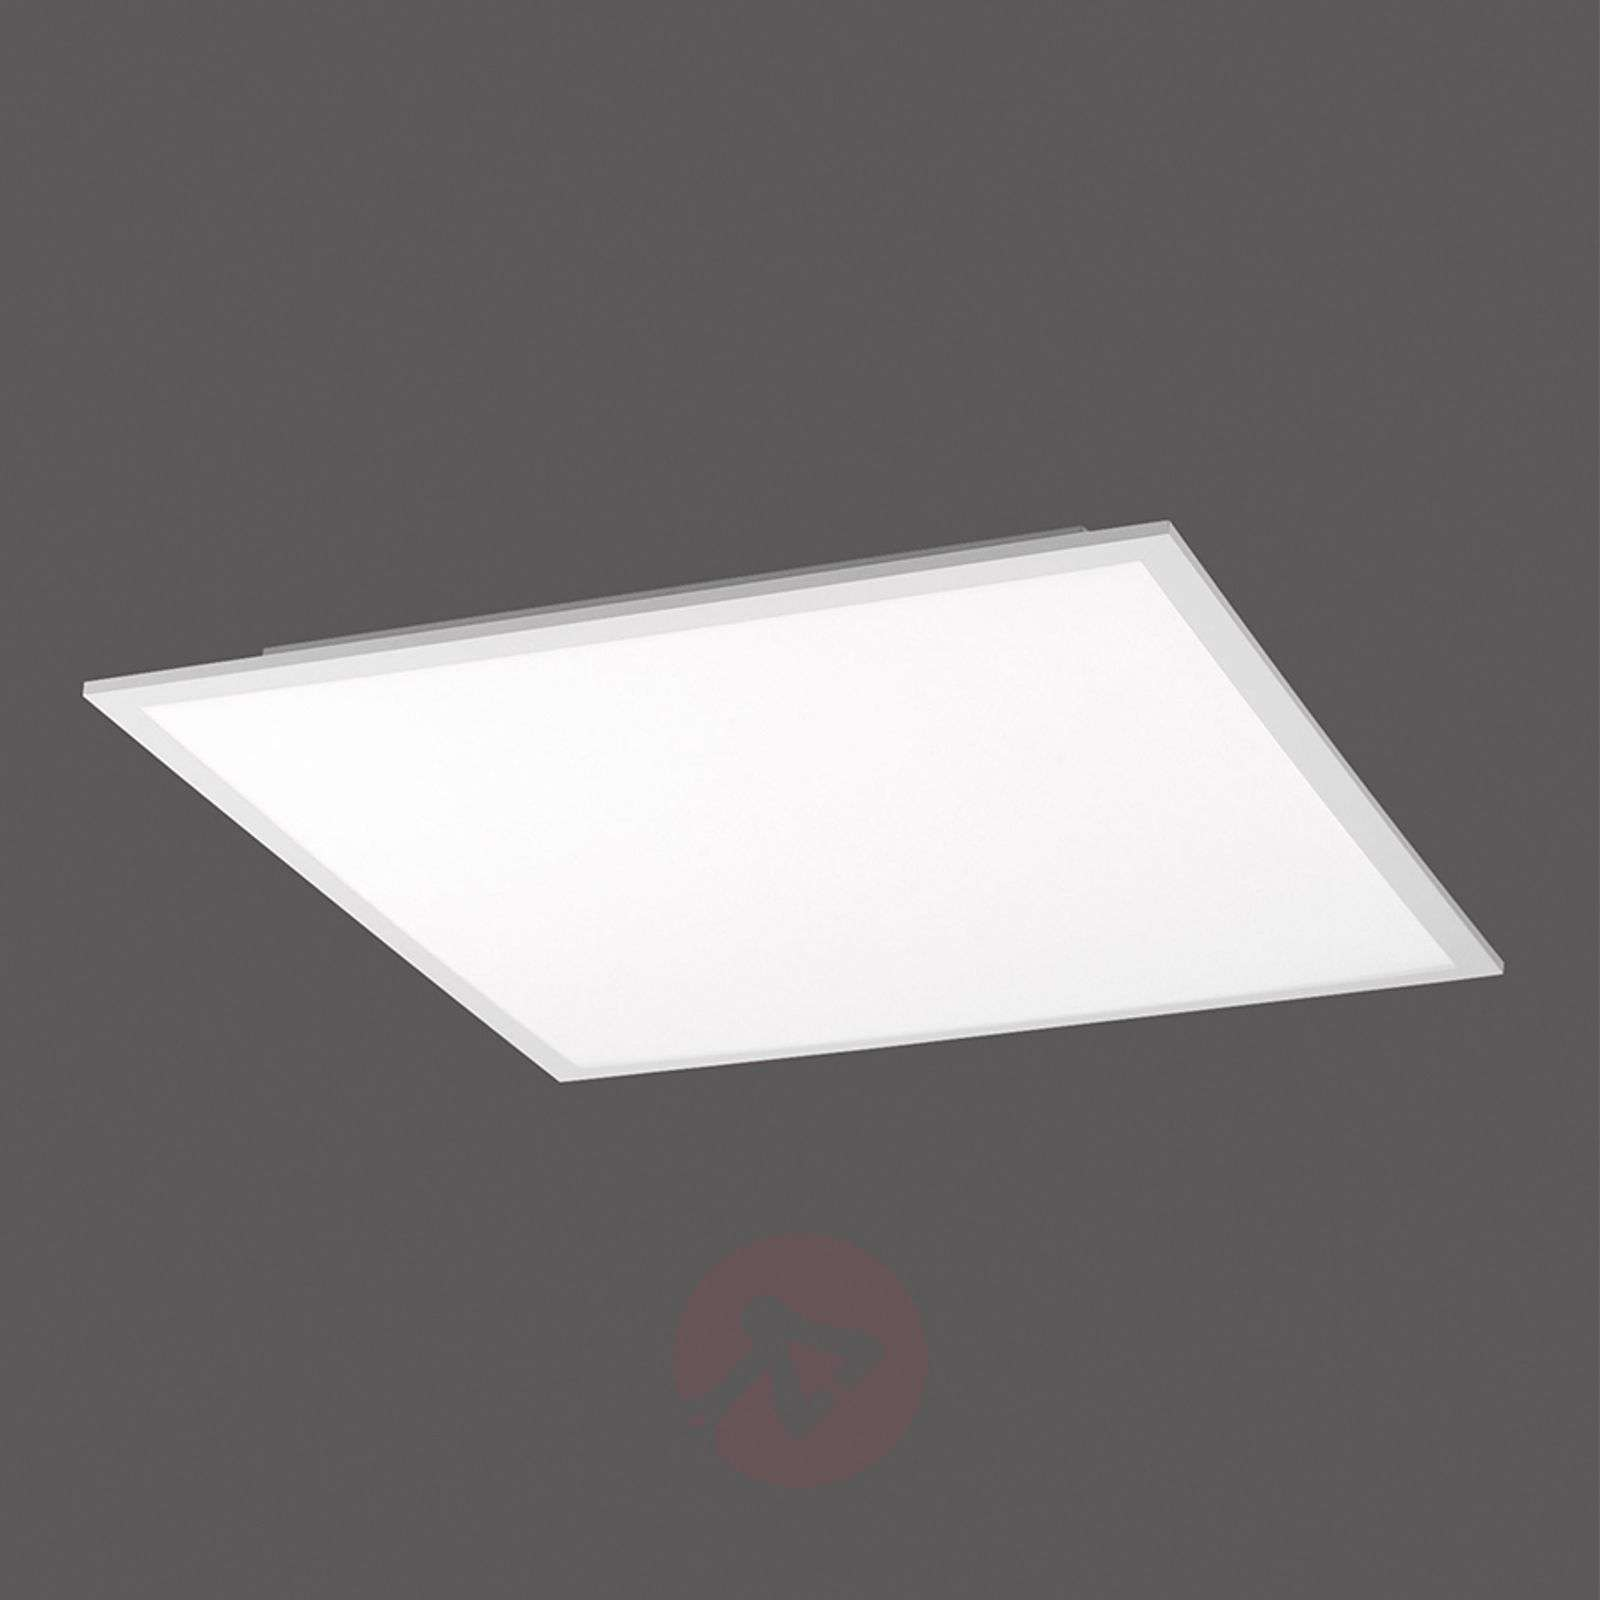 Plafonnier LED Q-Flag compatible Smart Home-7610448-01